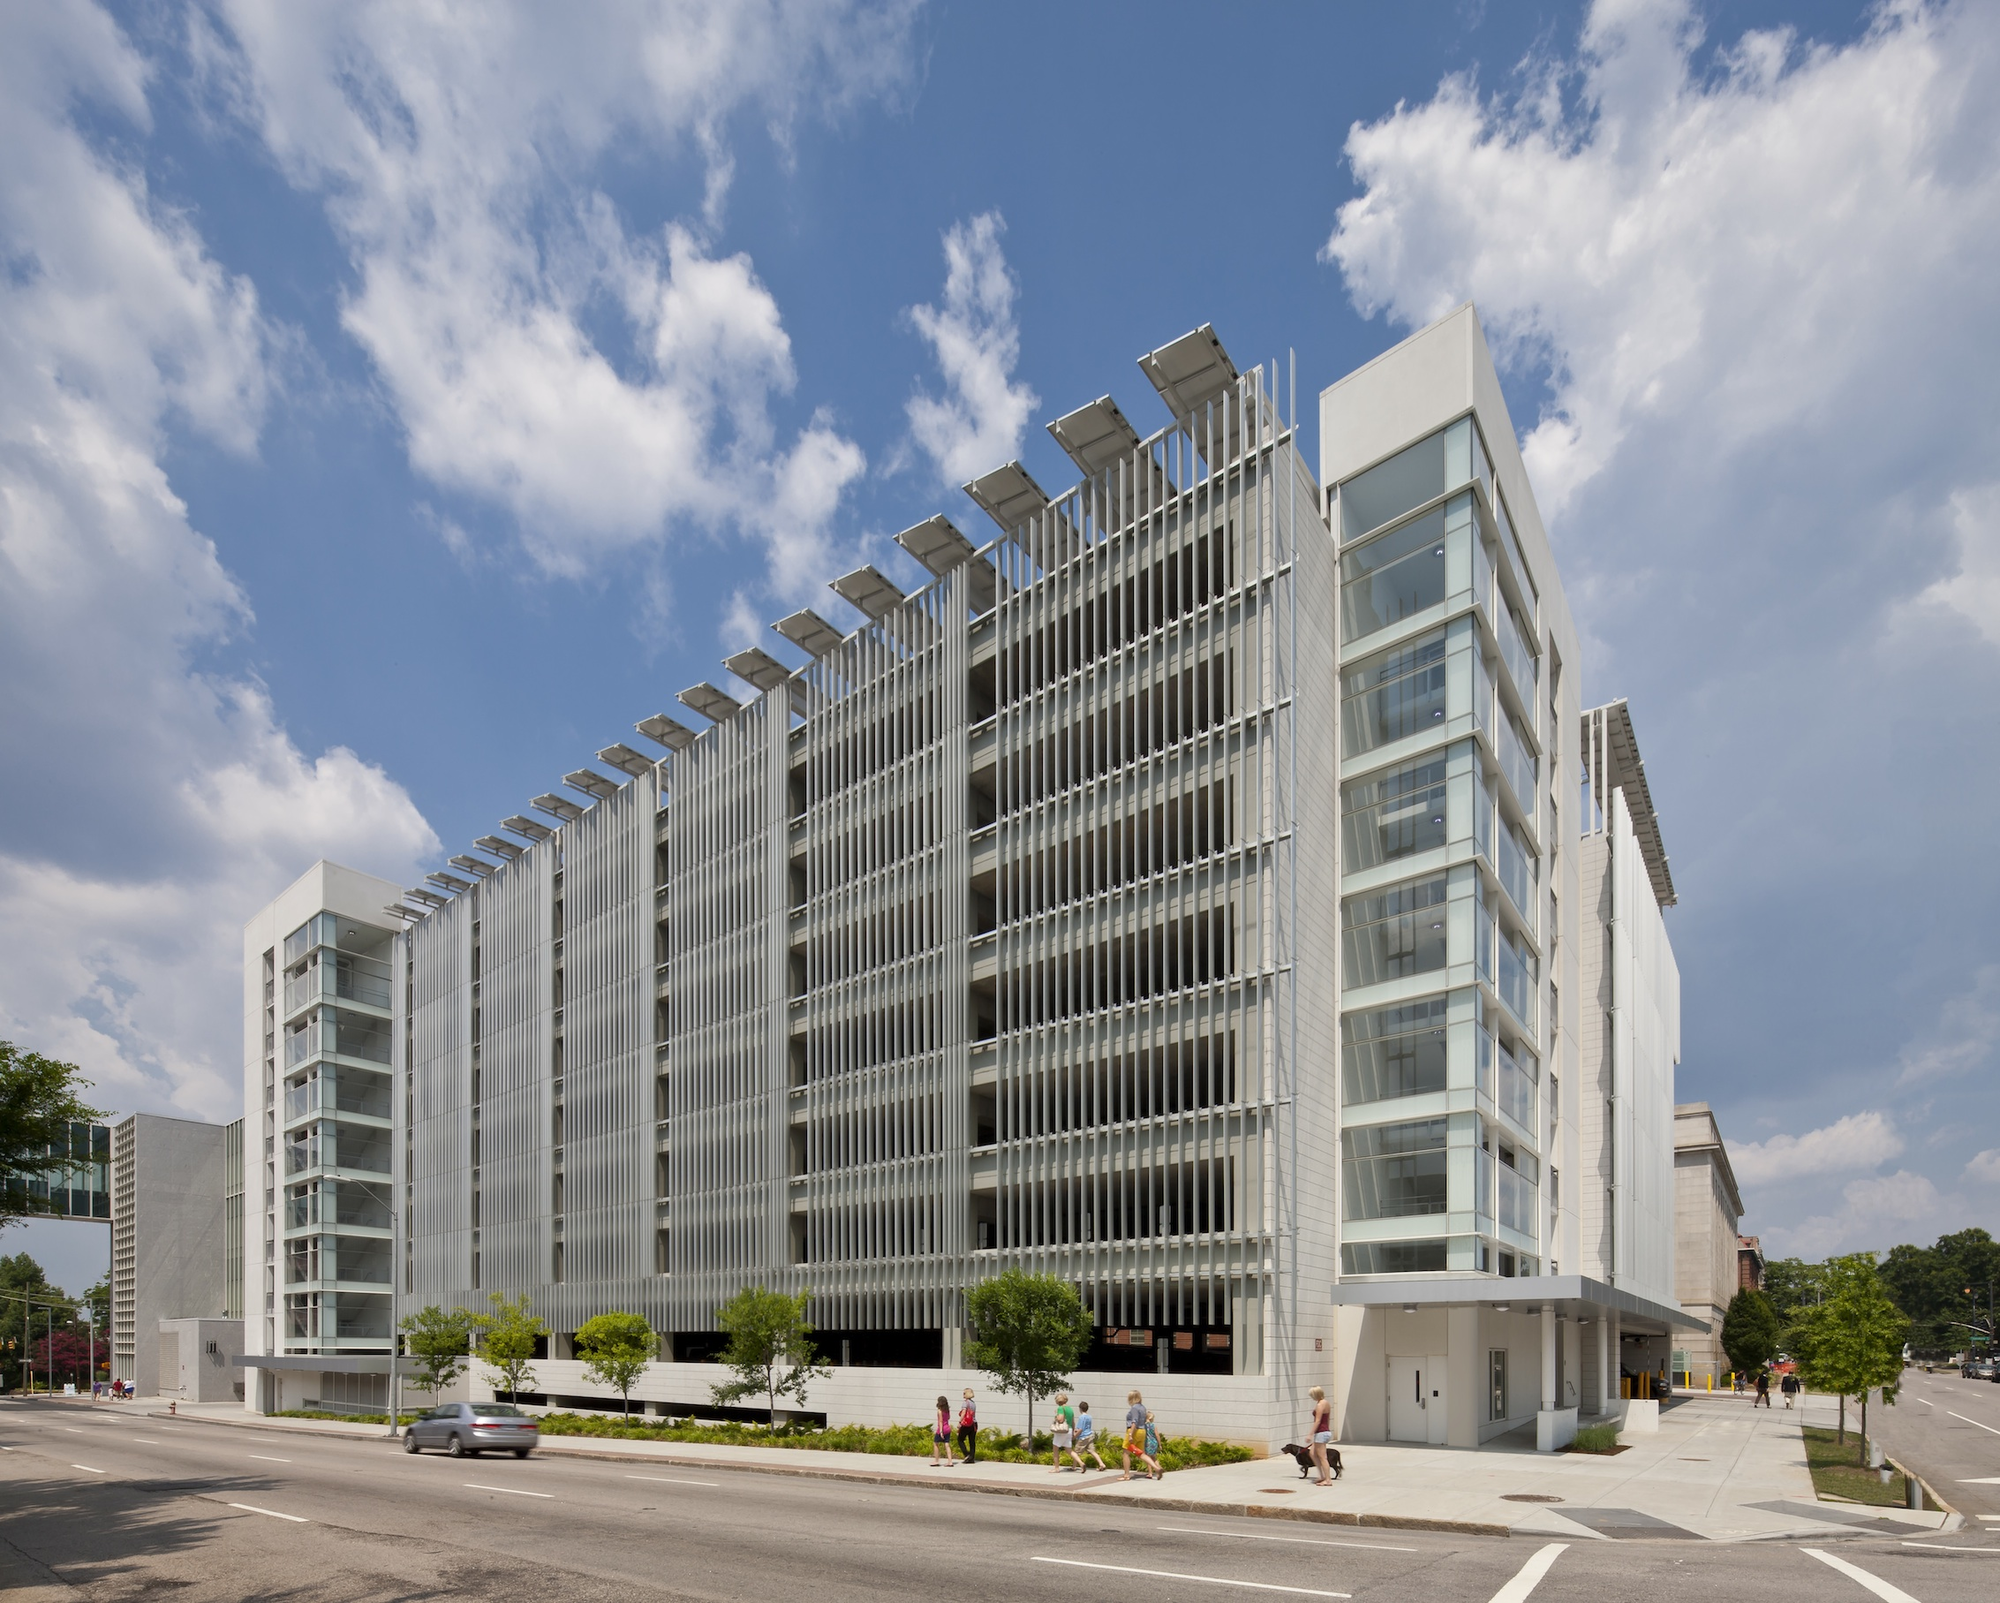 Green Square Parking Deck / Pearce Brinkley Cease + Lee, © Jonathan Hillyer